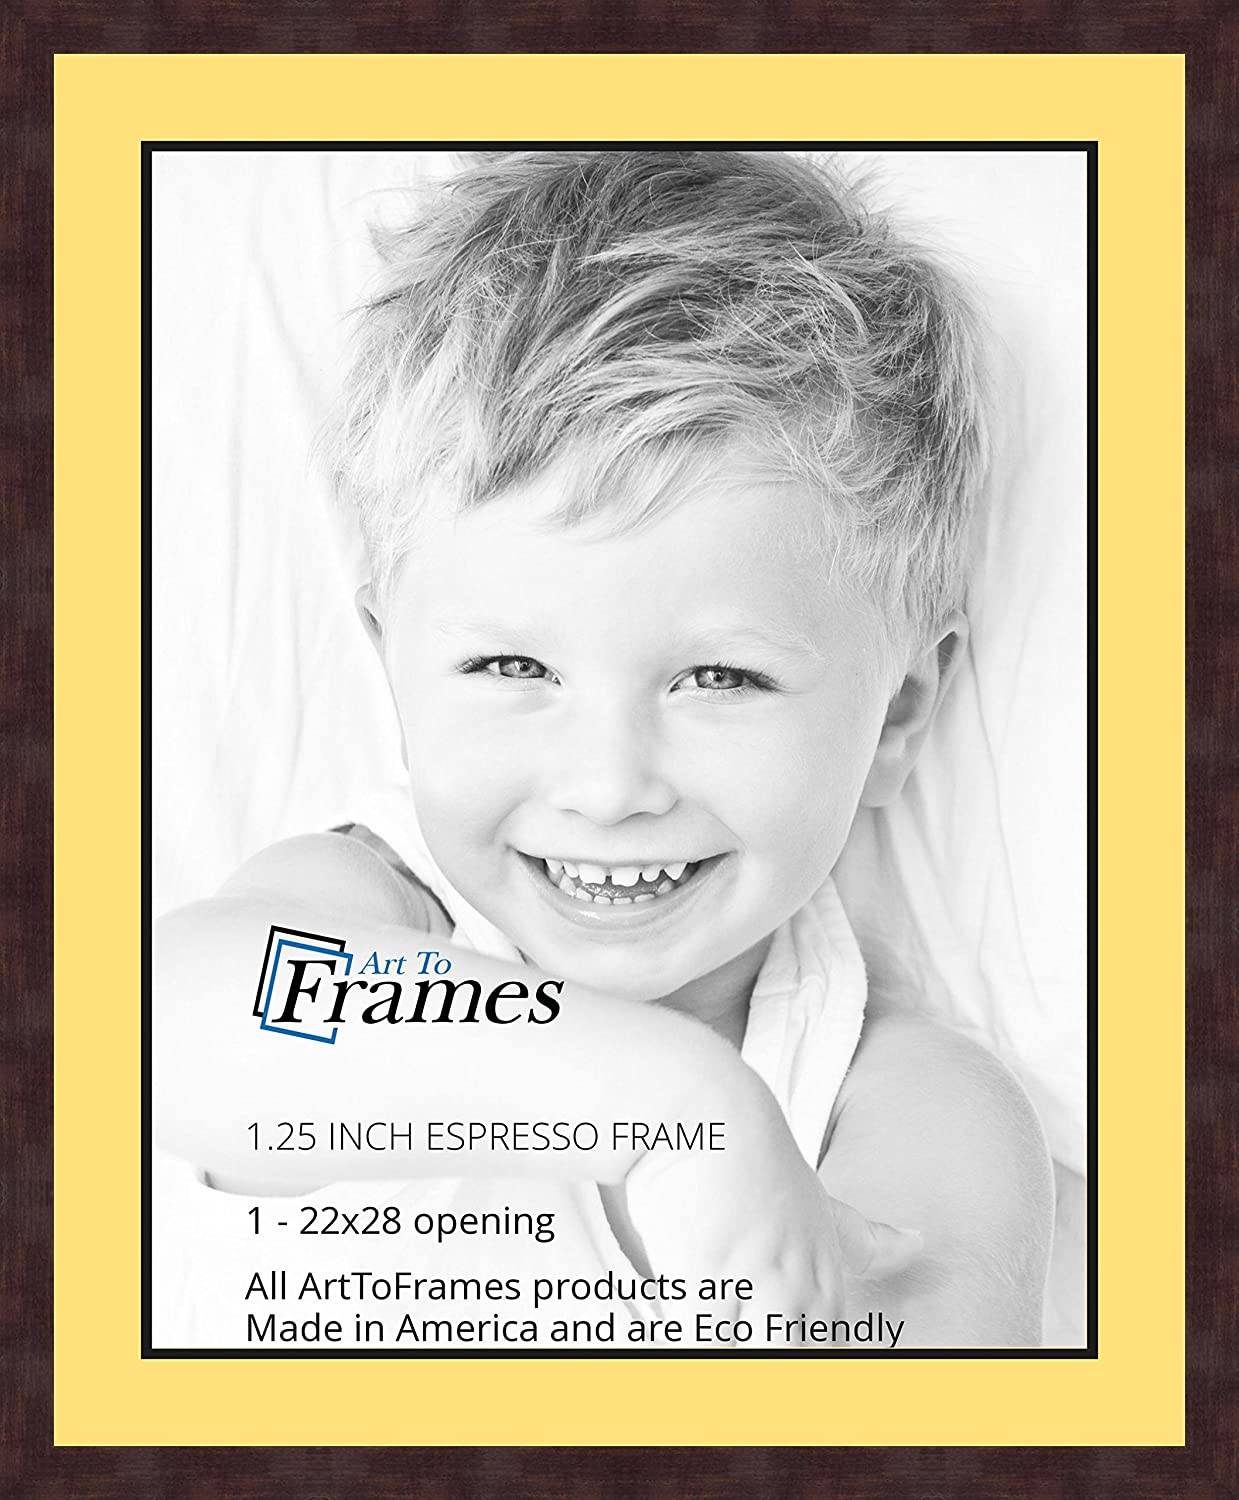 Art to Frames Double-Multimat-662-47R//89-FRBW26061 Collage Frame Photo Mat Double Mat with 1-22x28 Openings and Espresso Frame